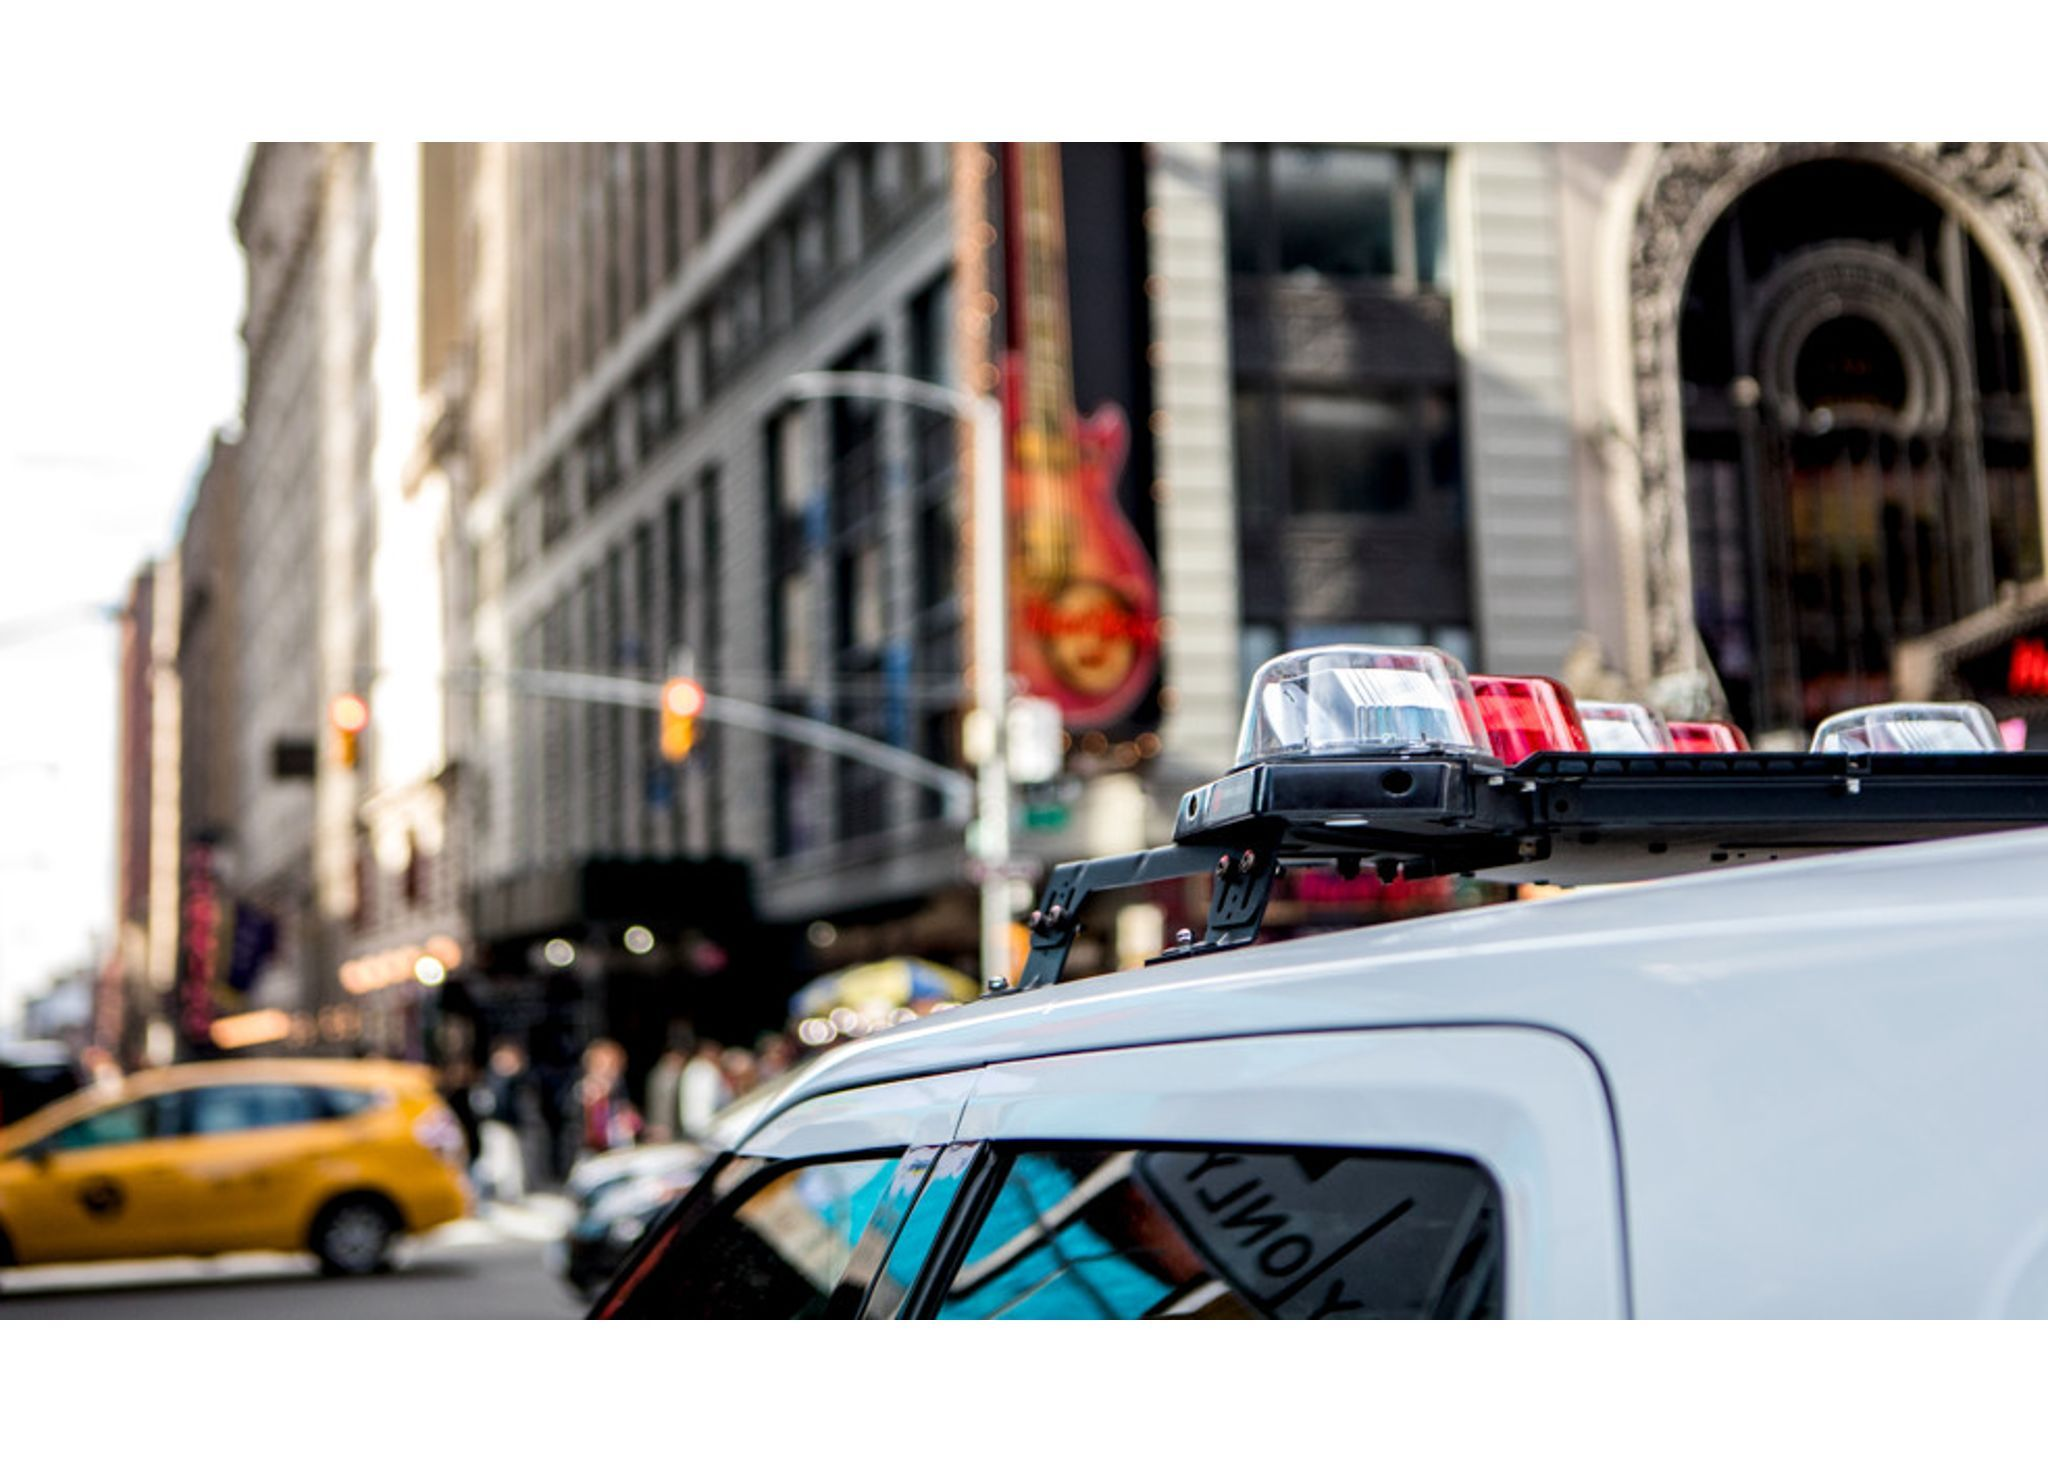 DHS Seeks to Improve Communication Between Public Safety Agencies in Joint Emergency Response Scenarios